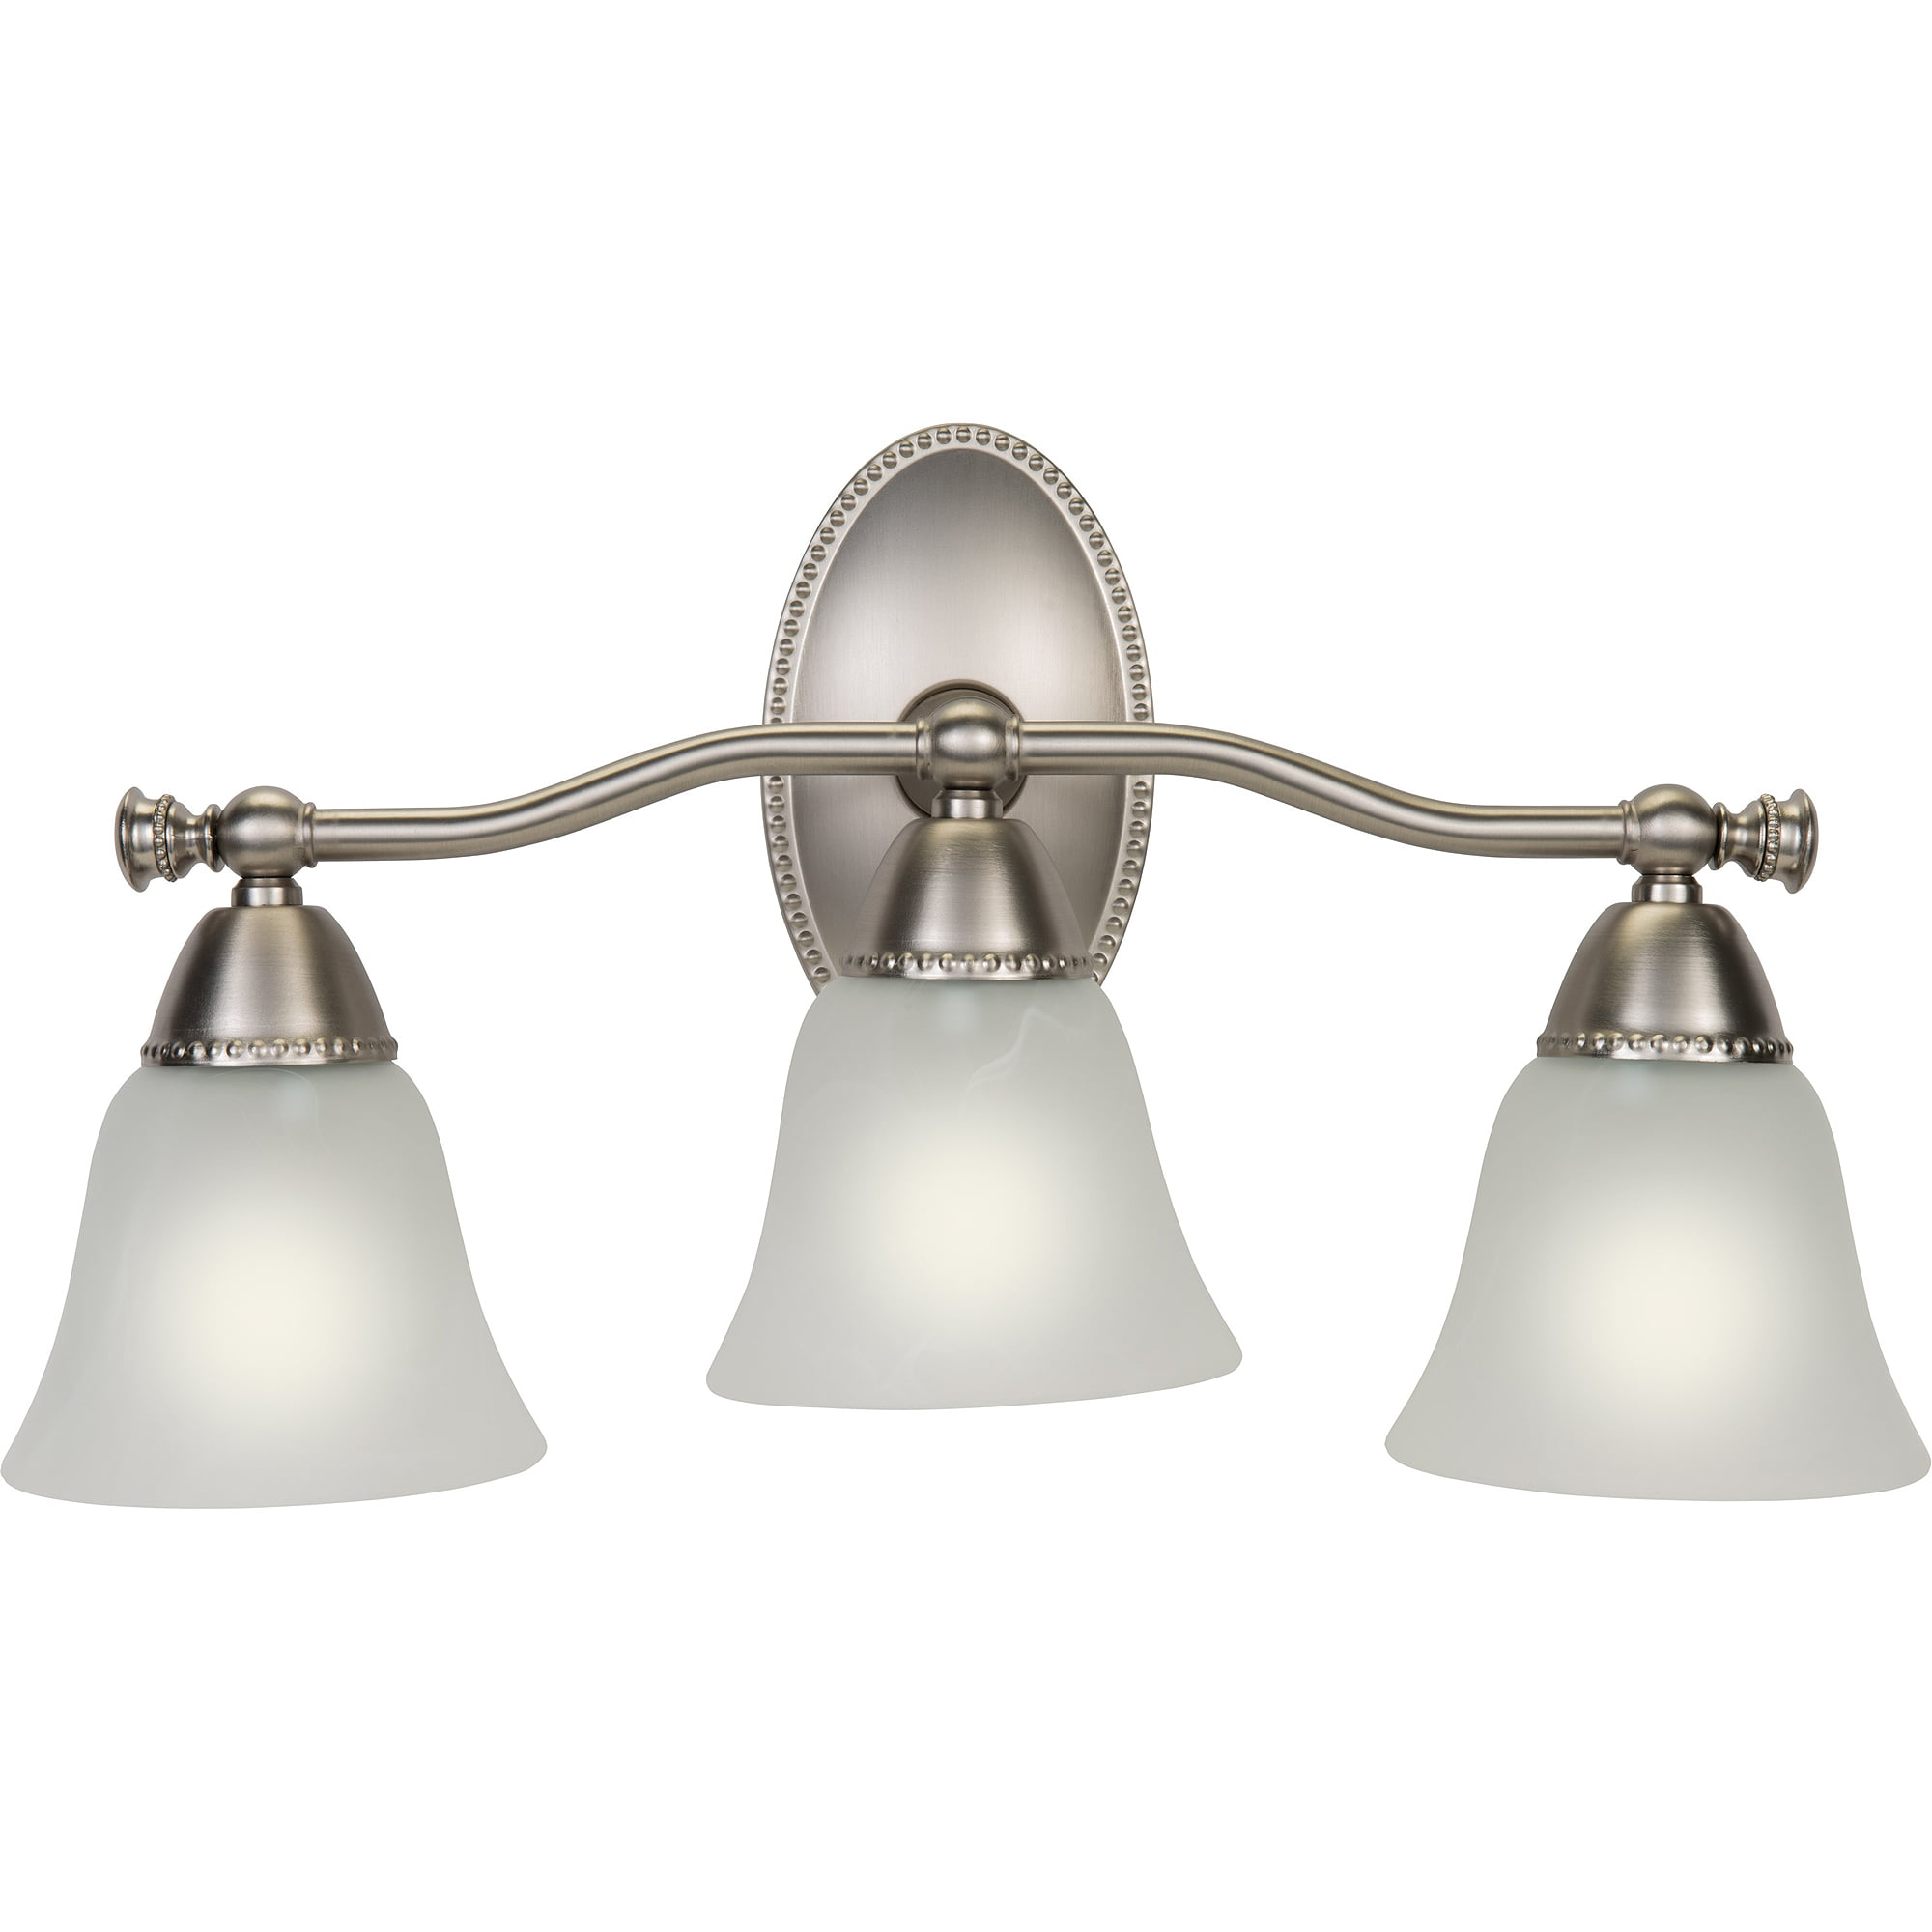 Bathroom vanity and mirror antique ceiling light fixtures bathroom - Better Homes And Gardens Beaded Triple Bathroom Vanity Light Satin Nickel